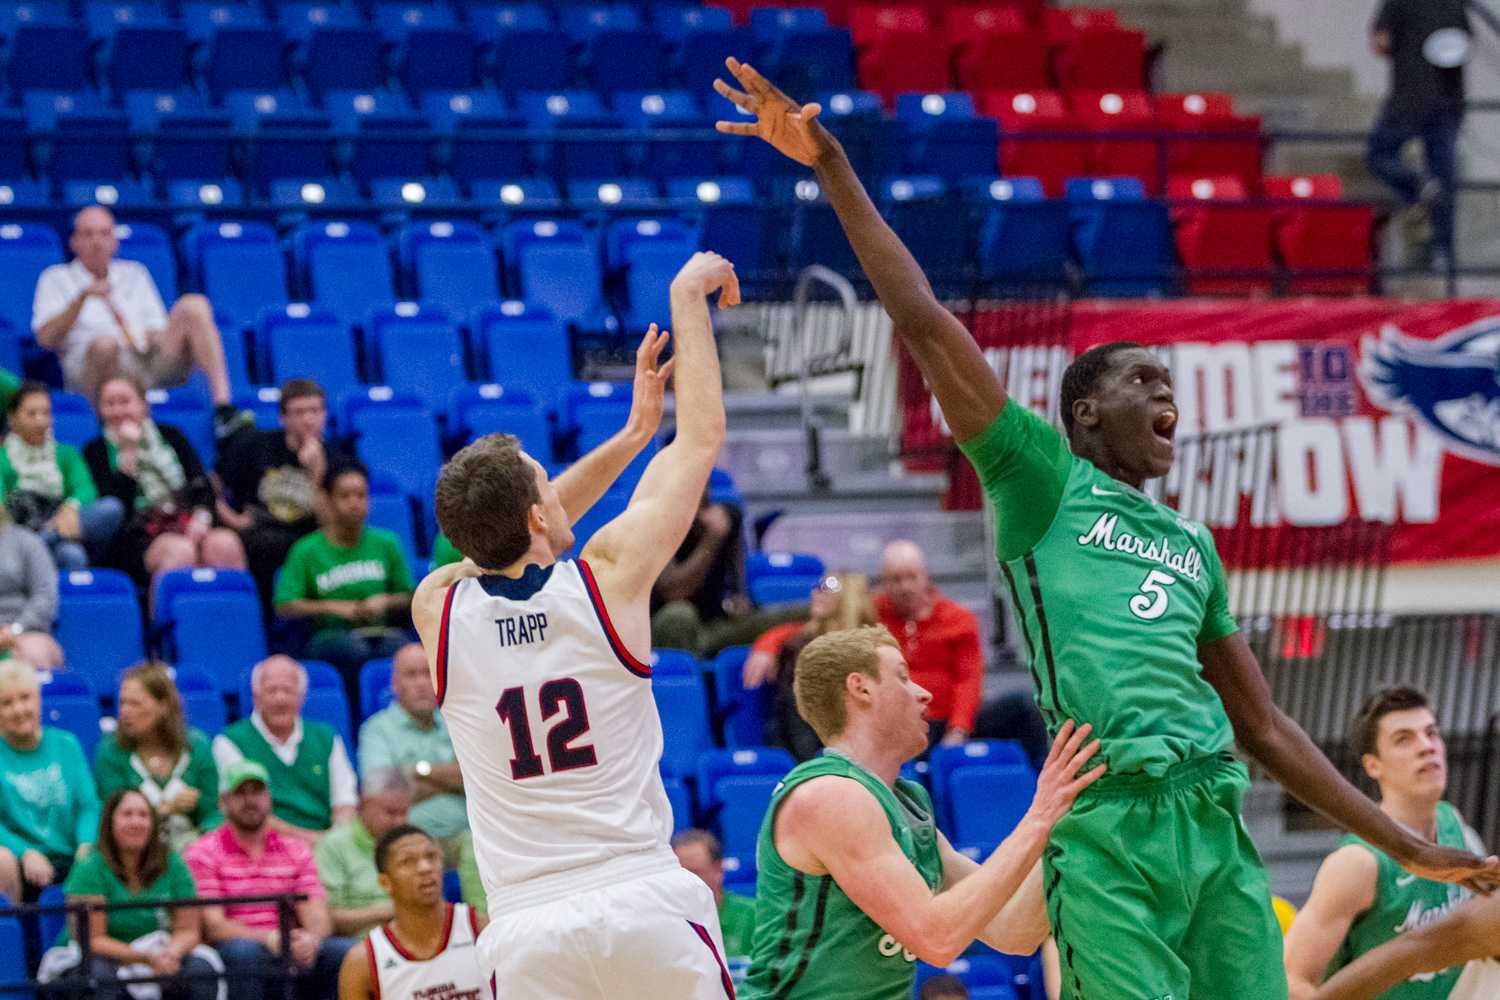 Jackson Trapp (12) shoots over Cheikh Sane's (5) to attempt a 3-point shot.